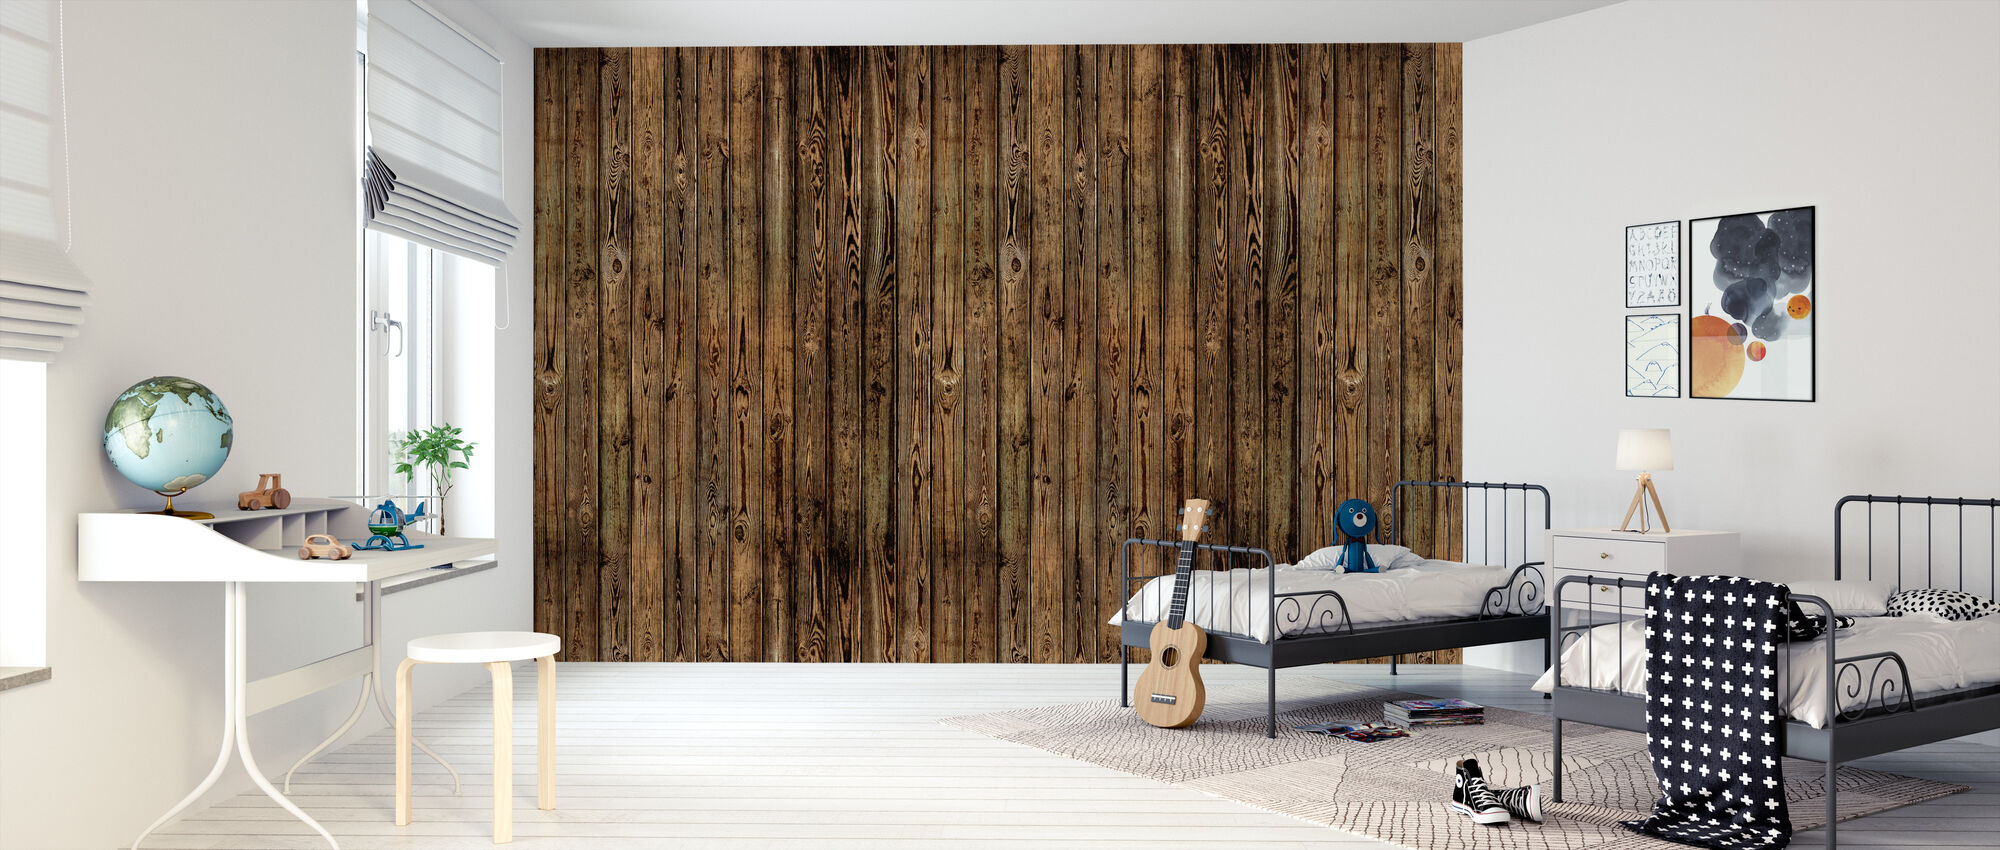 Wooden Plank Wall - Burned - Wallpaper - Kids Room